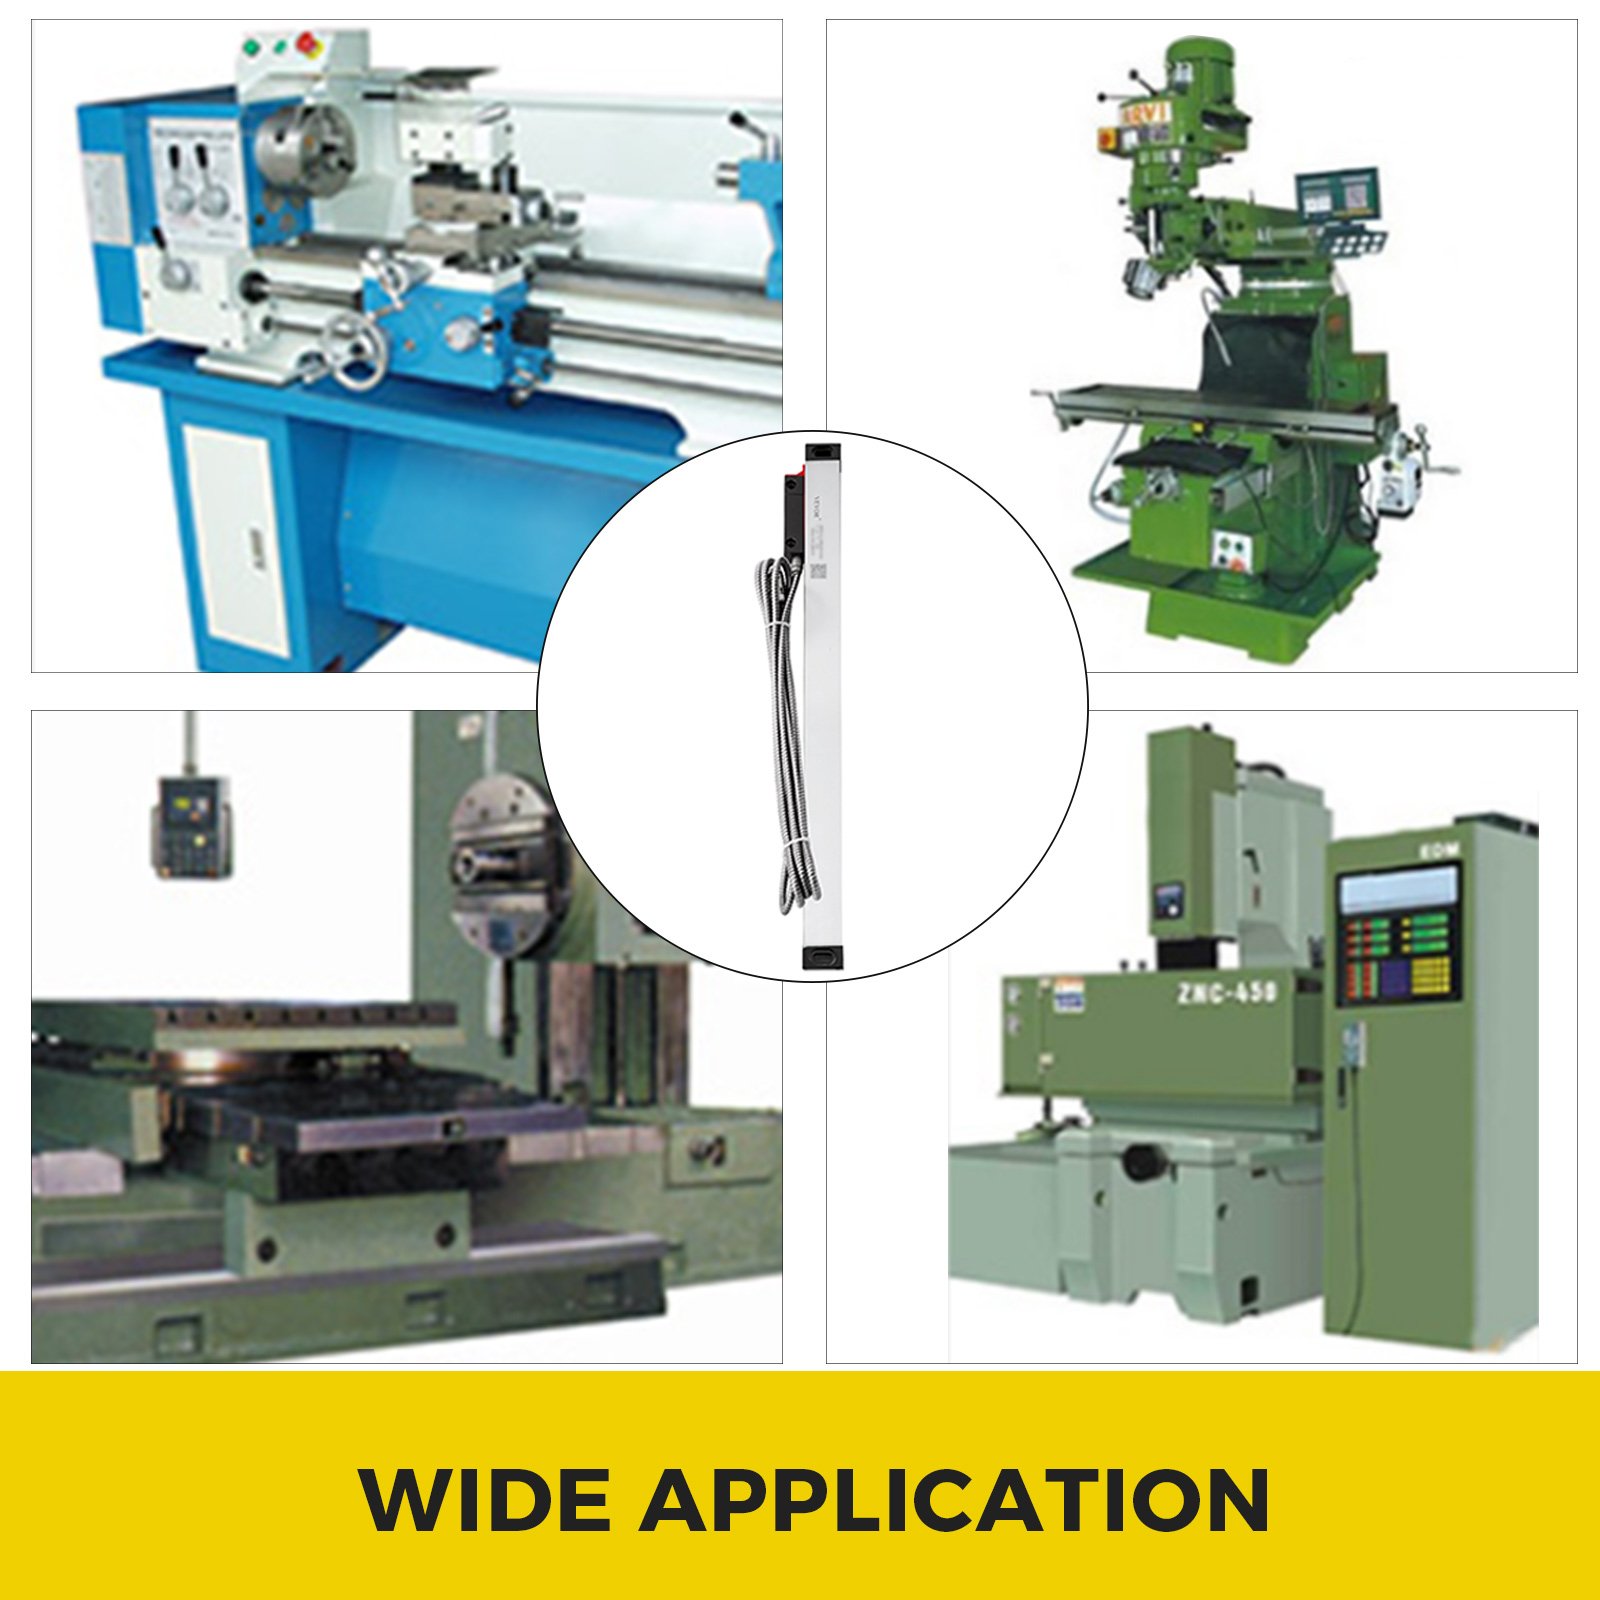 2-3-Axis-Digital-Readout-Linear-Scale-Double-Seal-5-Bearing-System-Grinding thumbnail 91